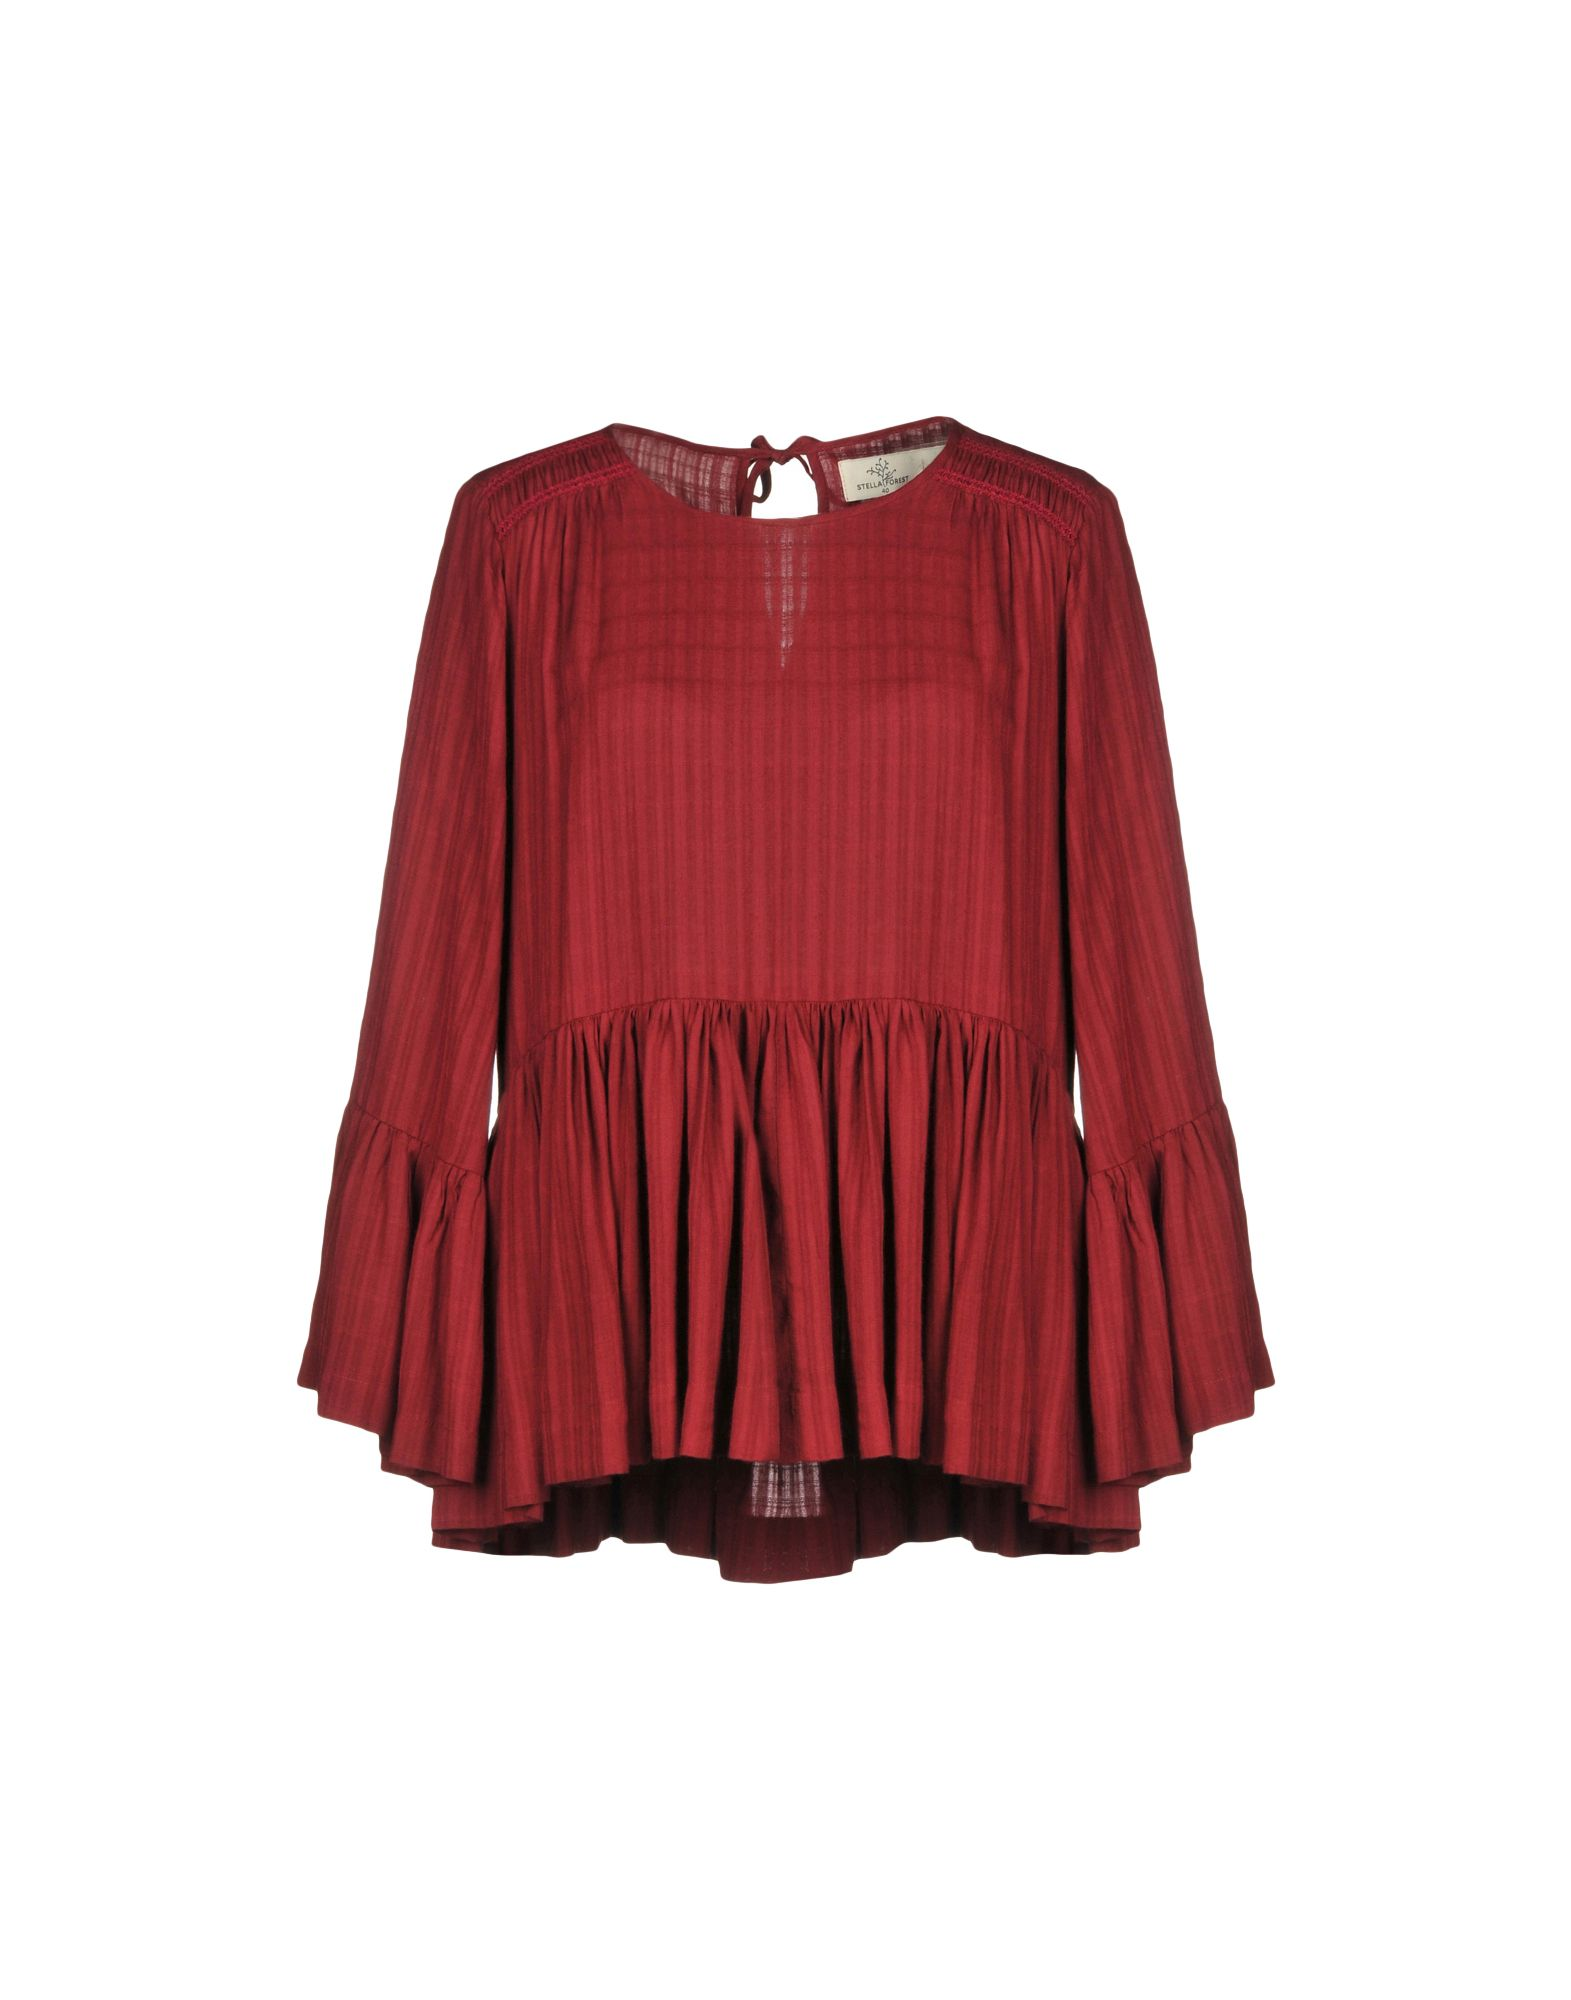 STELLA FOREST Blouse in Maroon